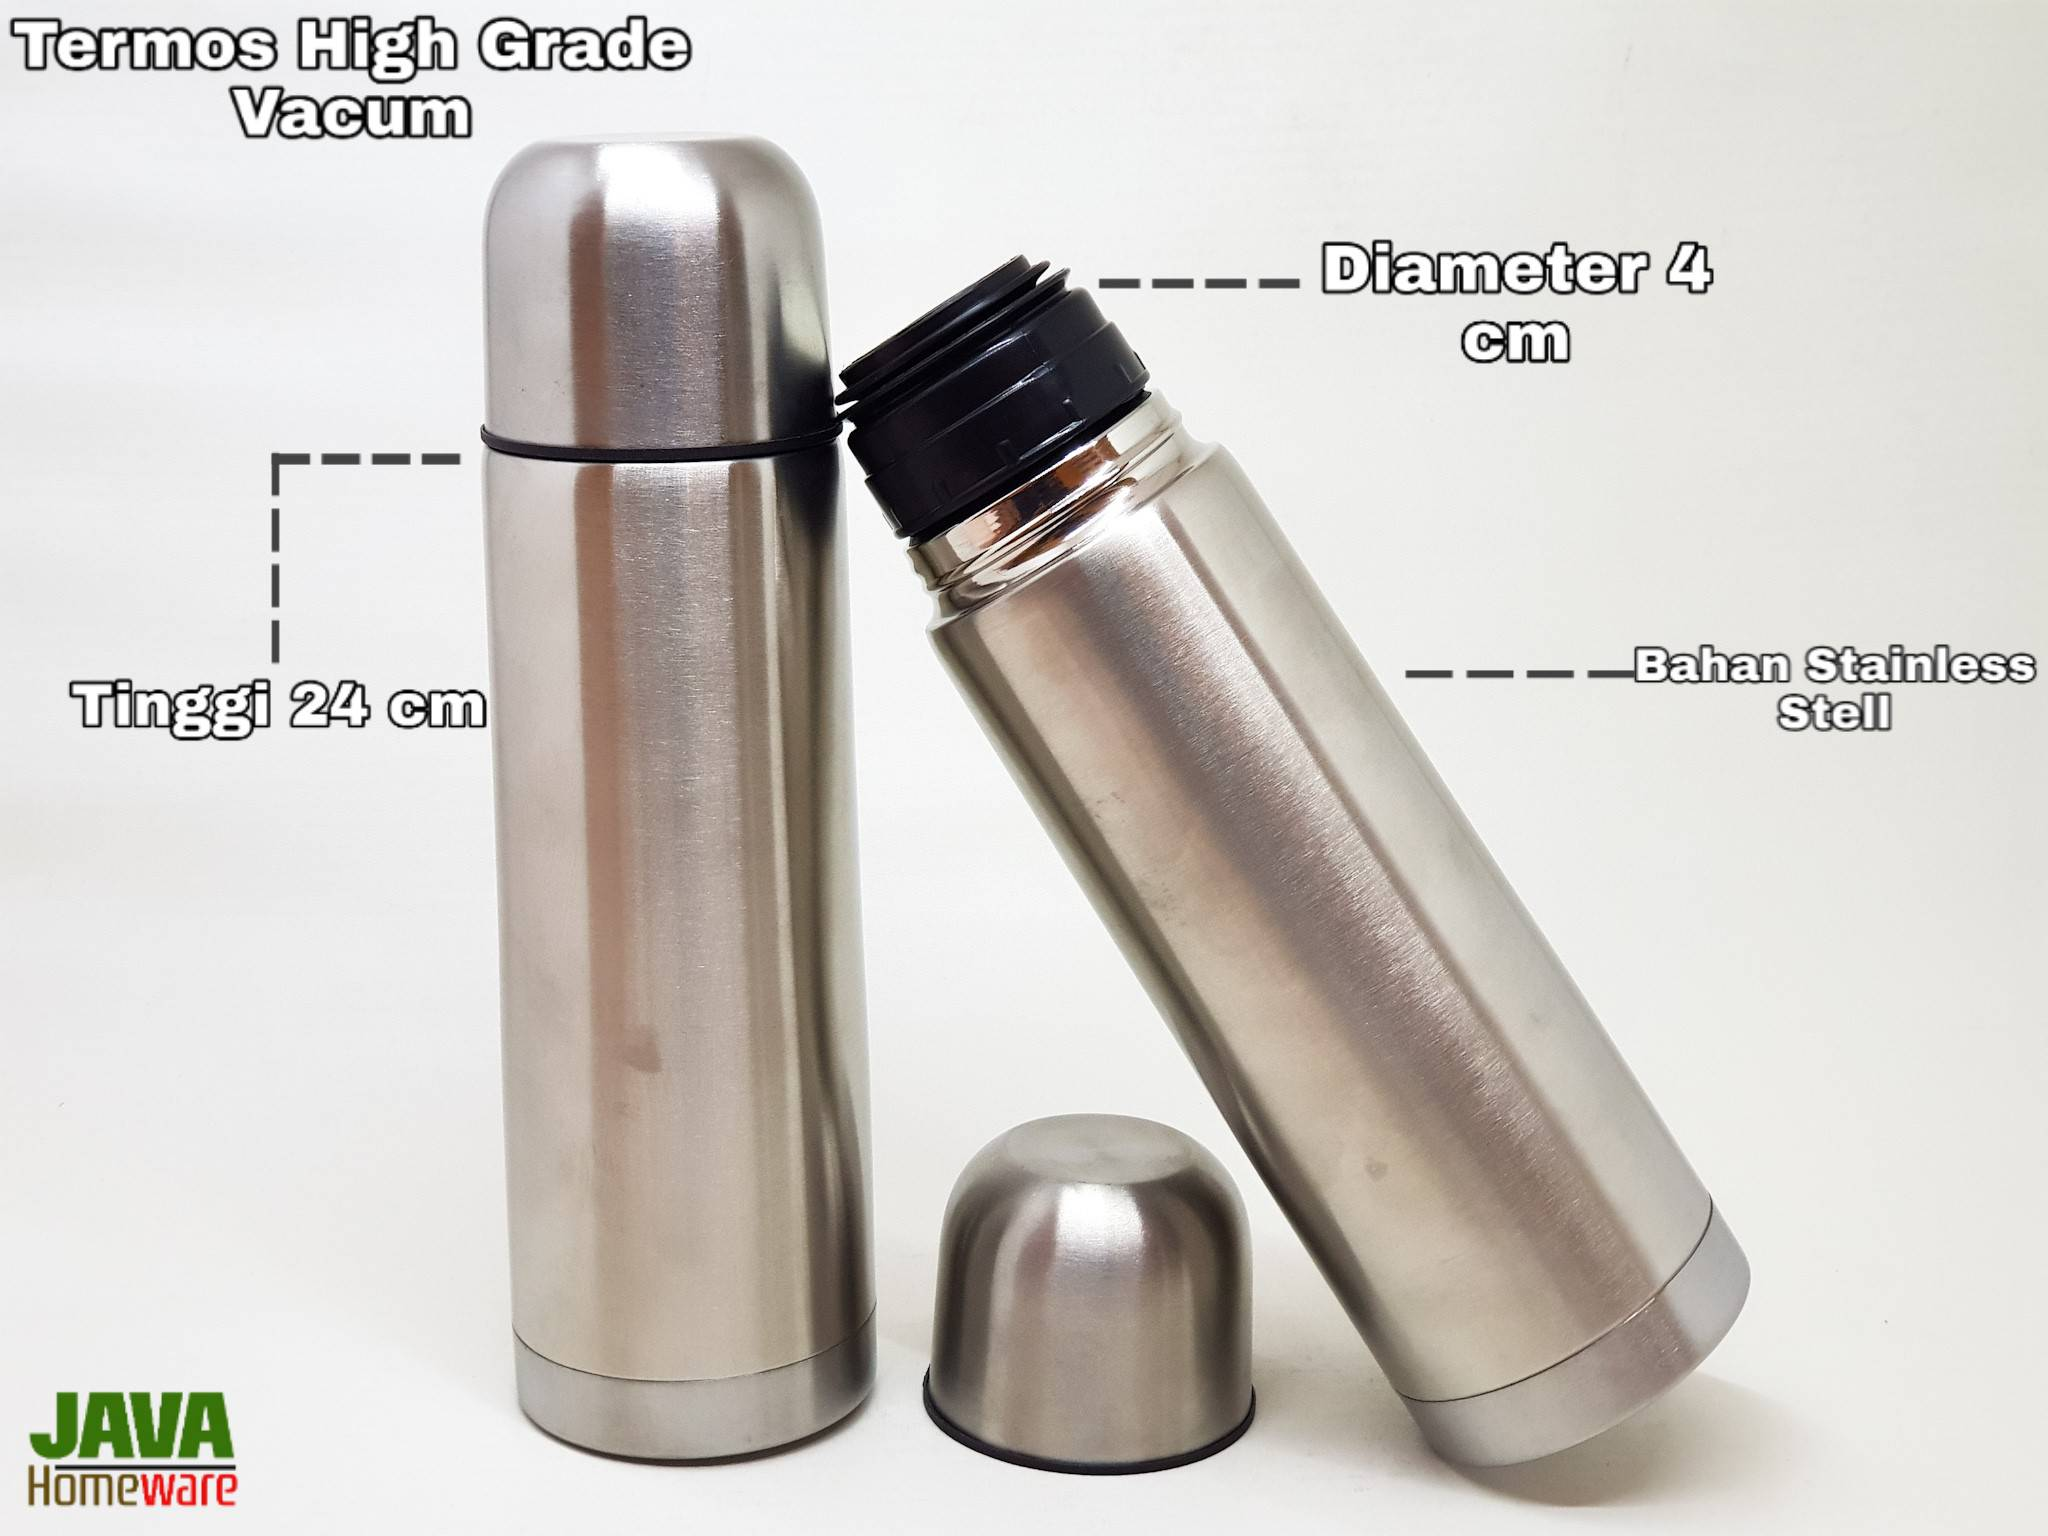 Termos High Grade Vacum Flask 18/8 Stailees Steel 0.5 L